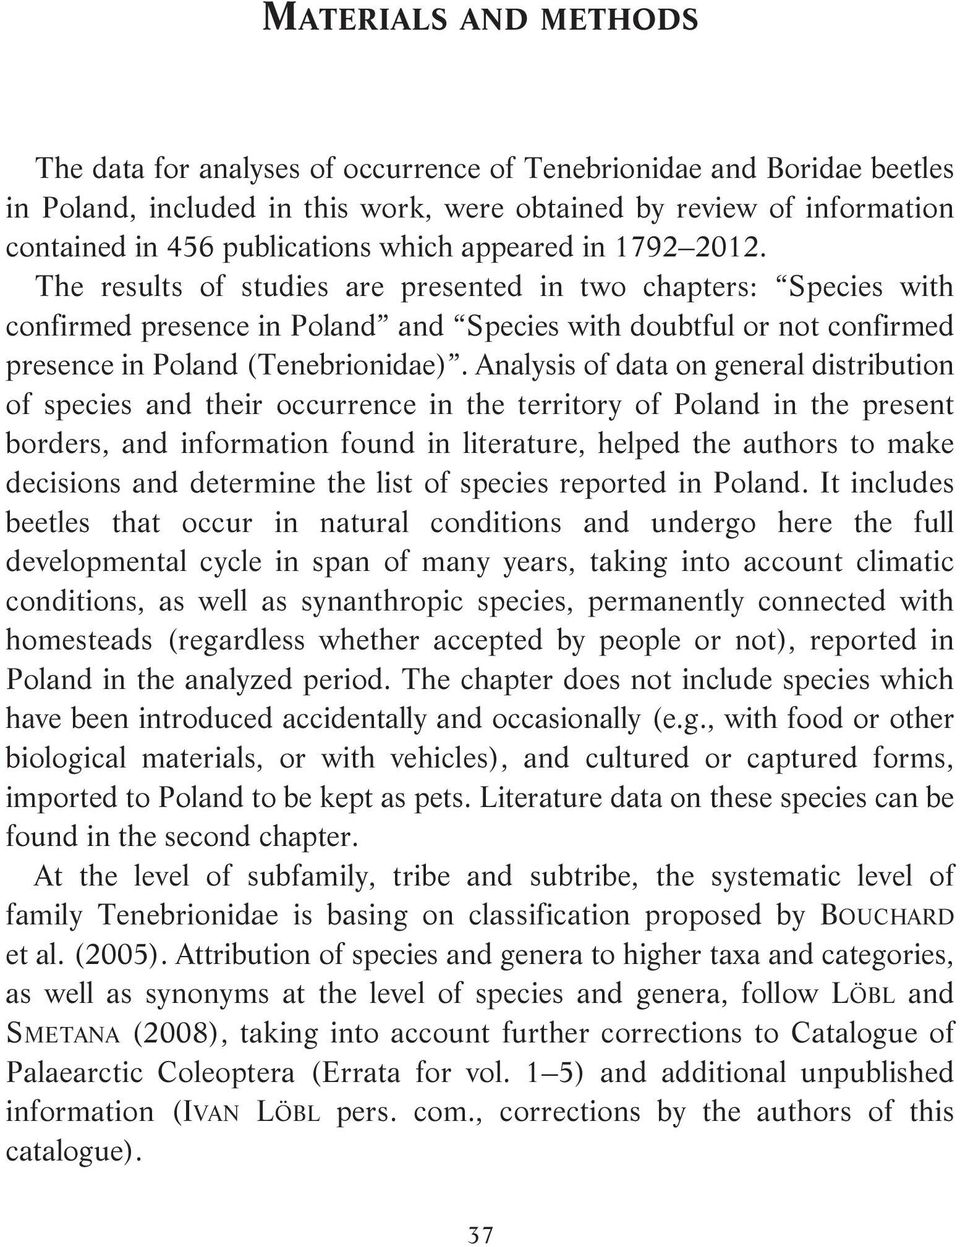 The results of studies are presented in two chapters: Species with confirmed presence in Poland and Species with doubtful or not confirmed presence in Poland (Tenebrionidae).